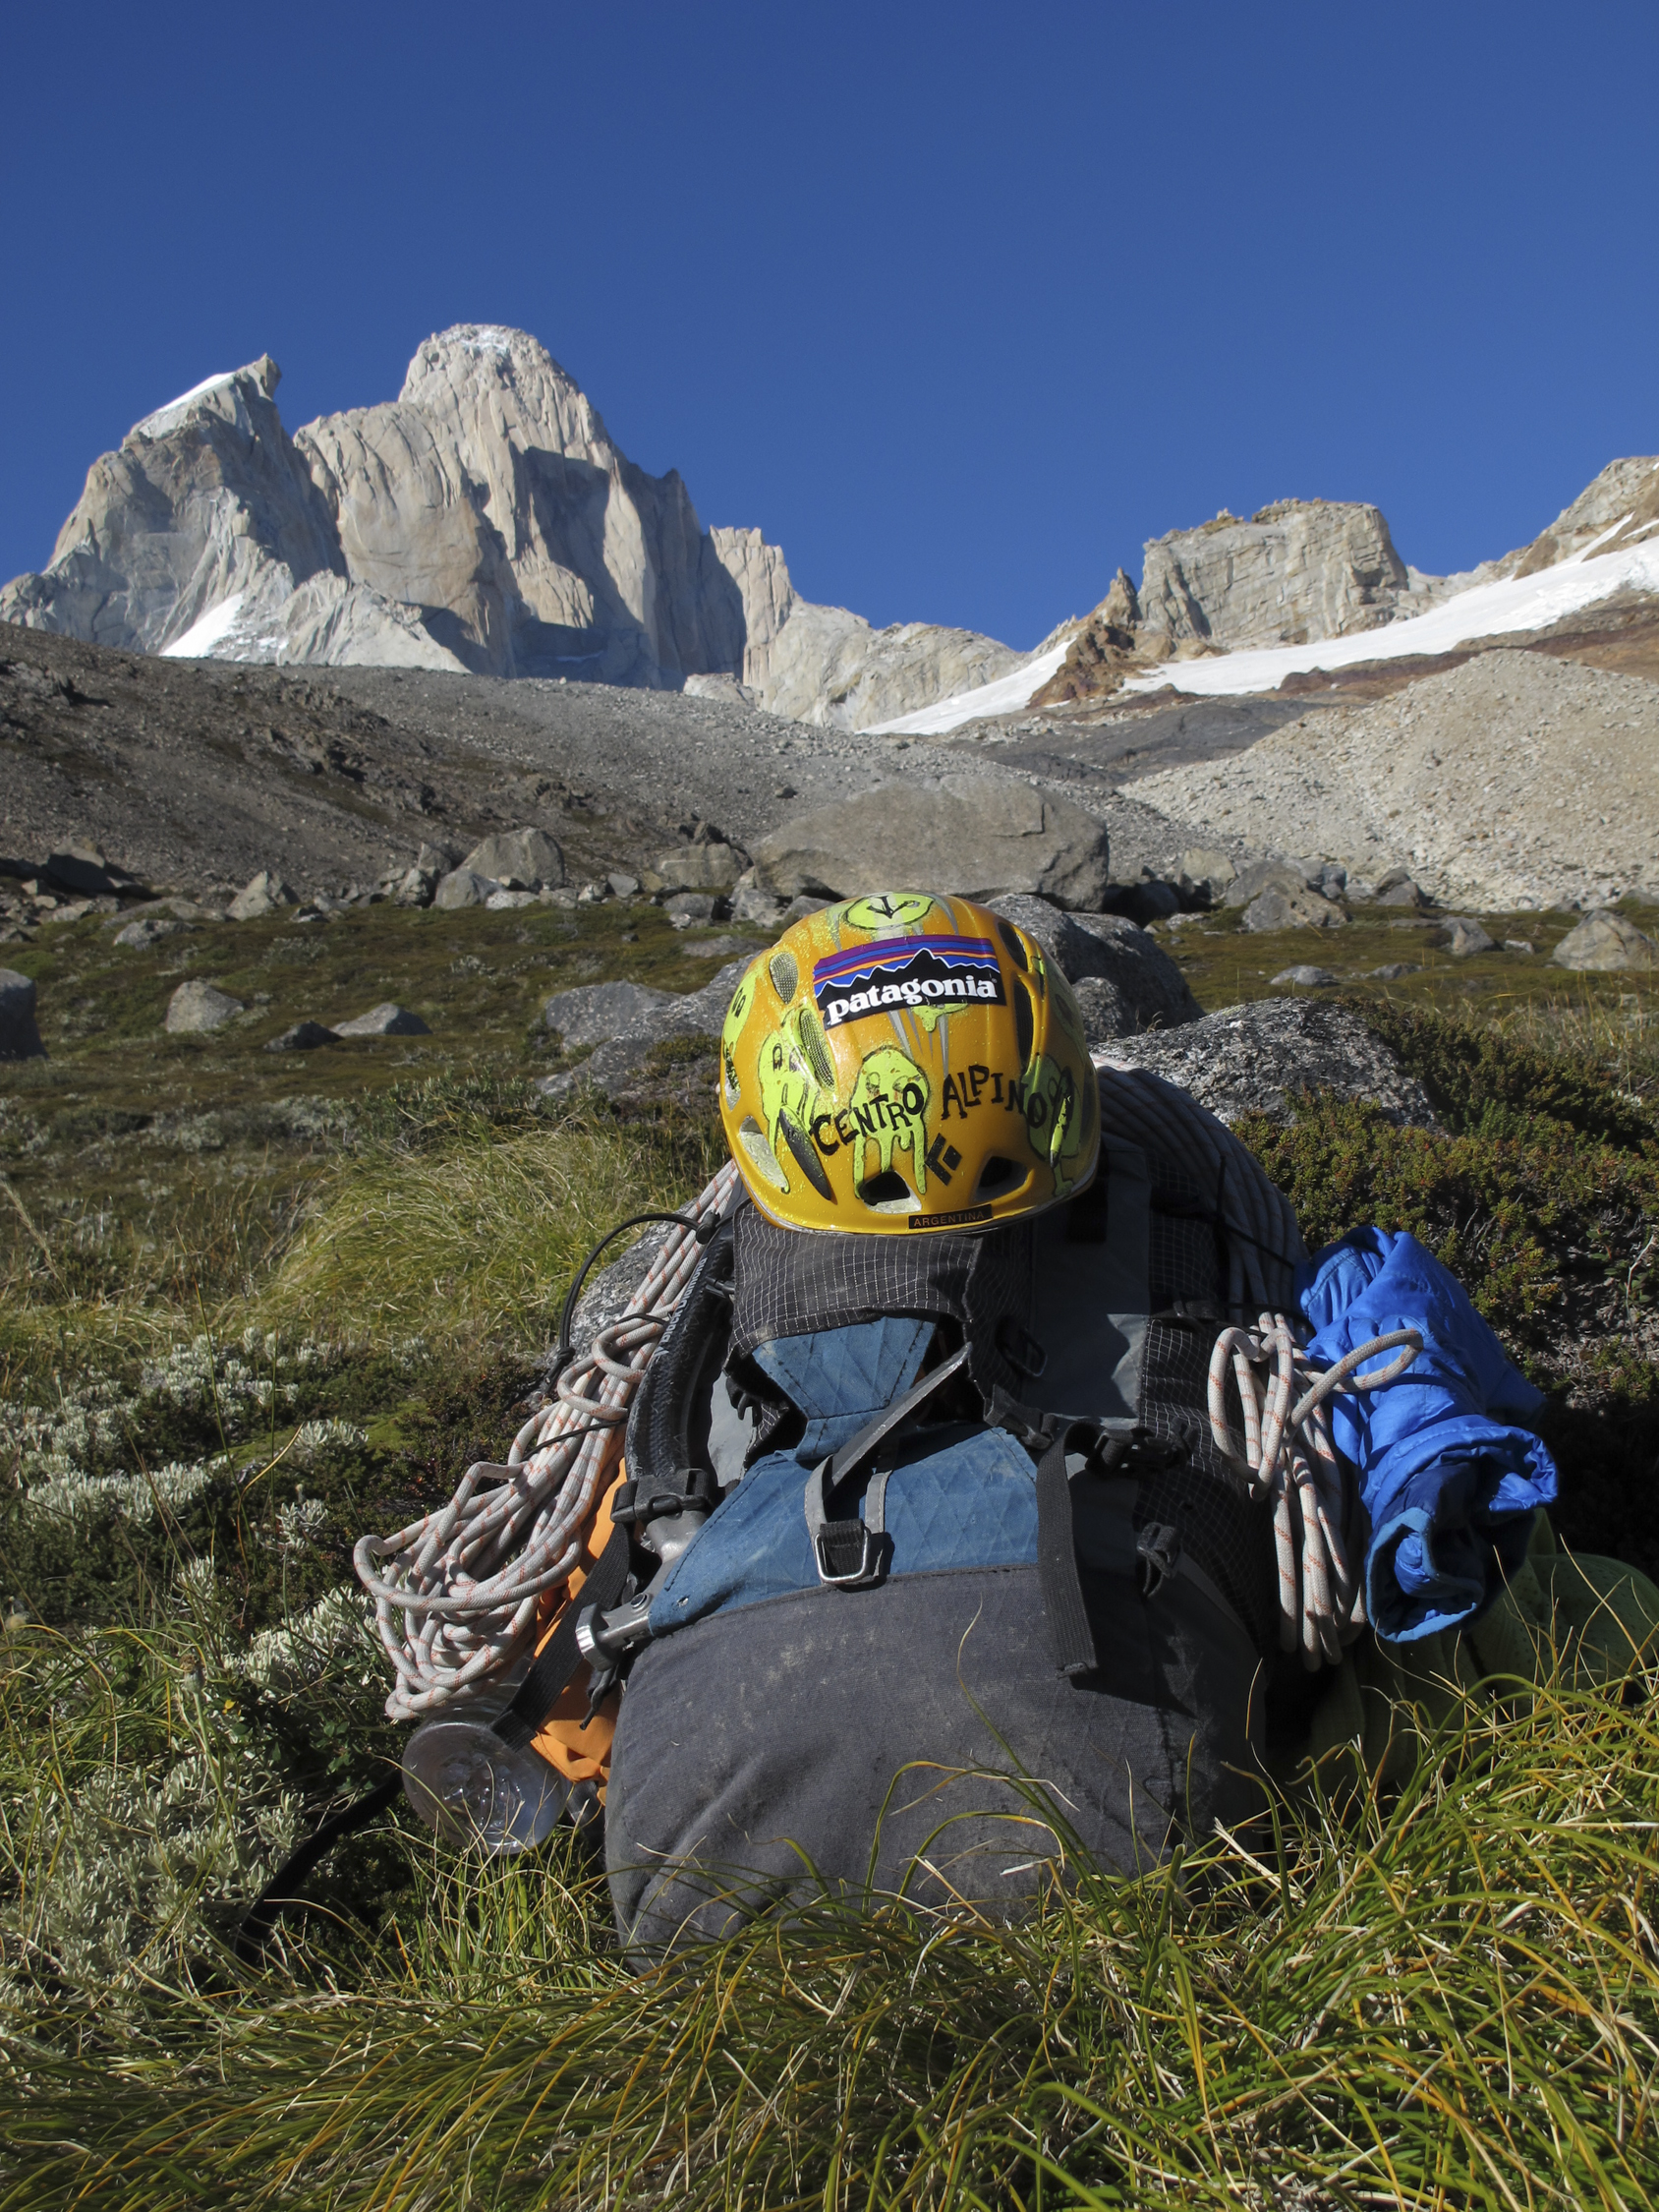 The author said that the CiloGear 30:30 backpack is basically an improved version of the CiloGear 45-liter pack pictured here in Patagonia in 2012, loaded with enough gear to go alpine style on Mate, Porro y Todo lo Demas (6c [5.11b], 900m) on the North Pillar of Fitz Roy (3375m), which looms in the background. Huckaby writes, Troutman aka 'Coleman Blakeslee' and myself climbed up the North Pillar to the summit and descended down the Franco-Argentine route on the other side of Fitz. [Photo] Josh Huckaby